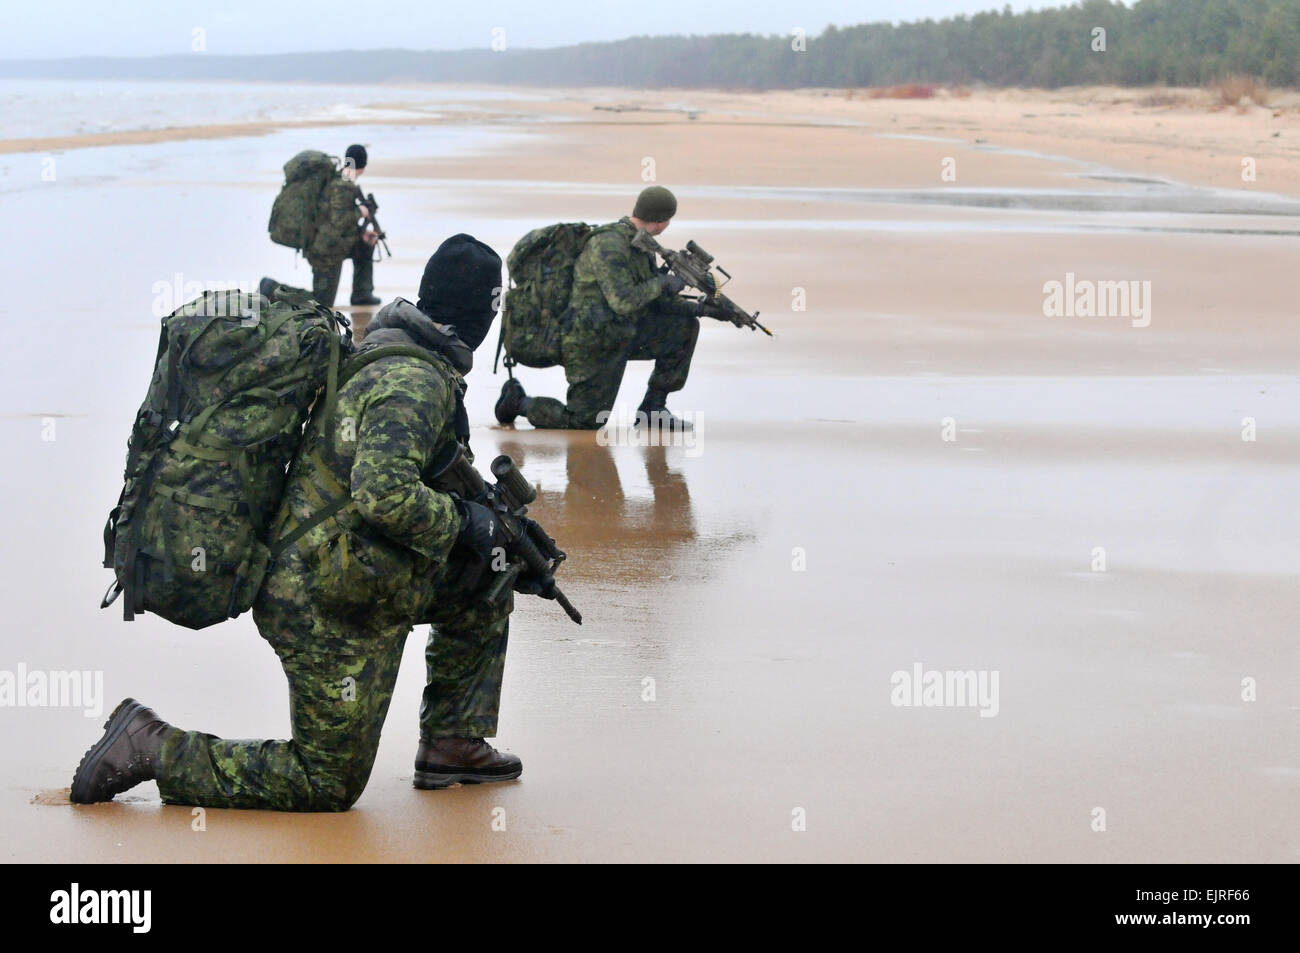 US Army reconnaissance commandos alongside Latvian and Canadian commandos perform a water infiltration during exercise Stock Photo